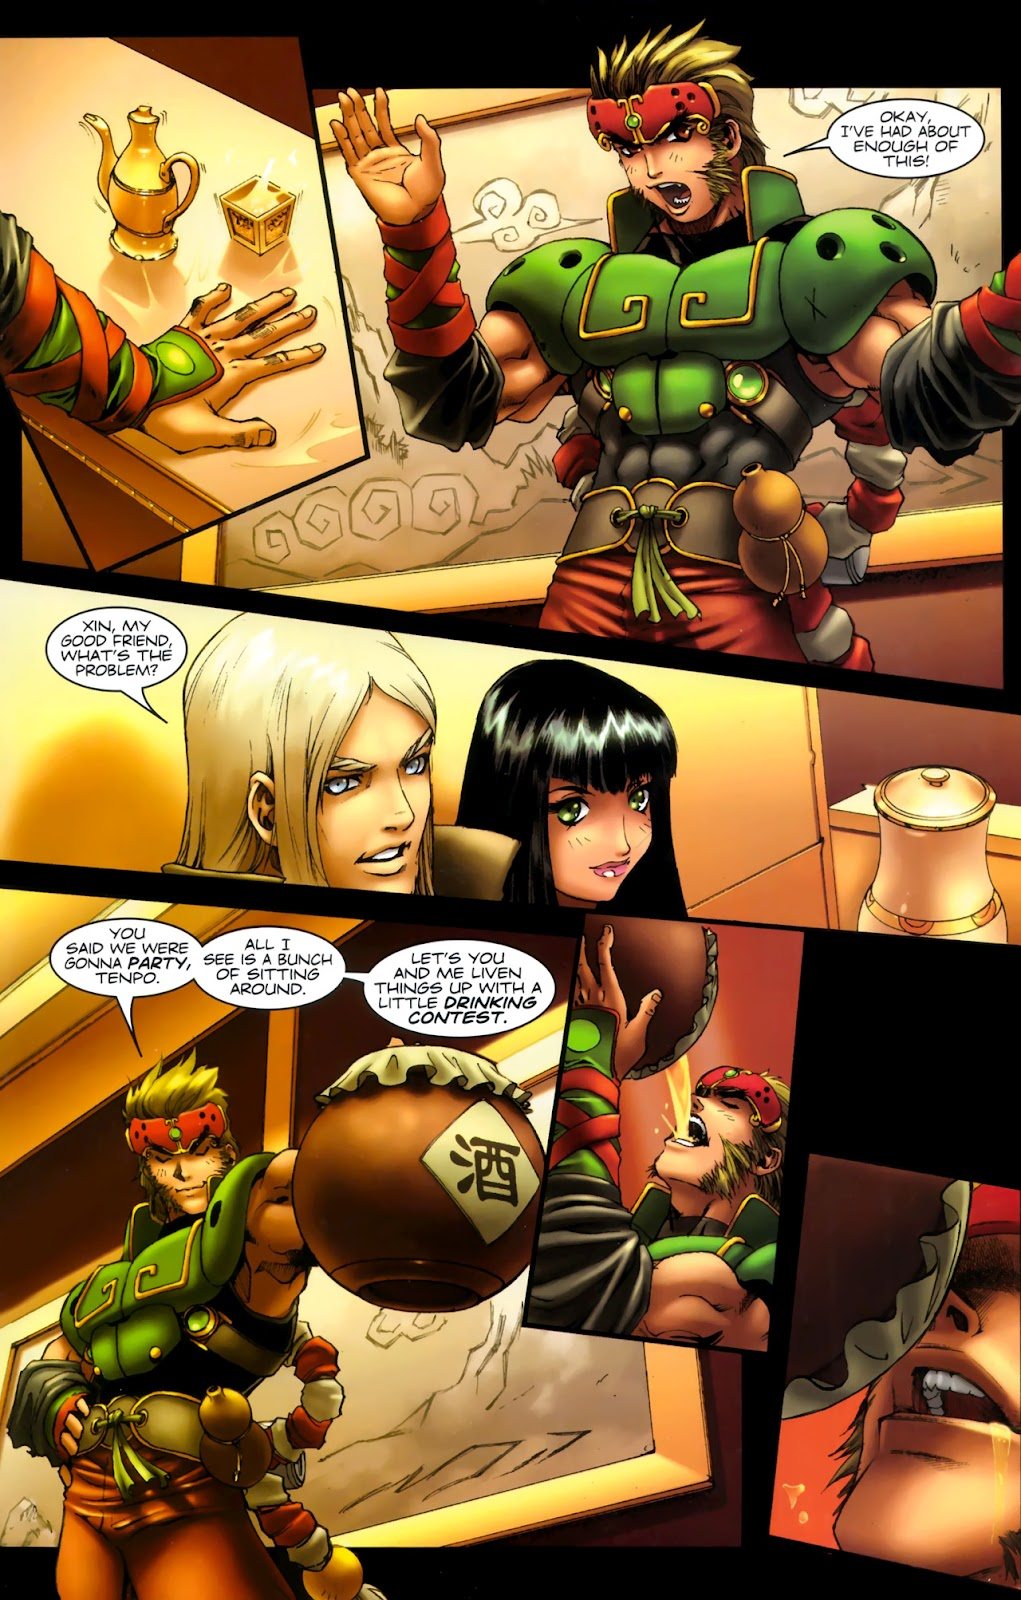 Read online Xin: Journey of the Monkey King comic -  Issue #1 - 20